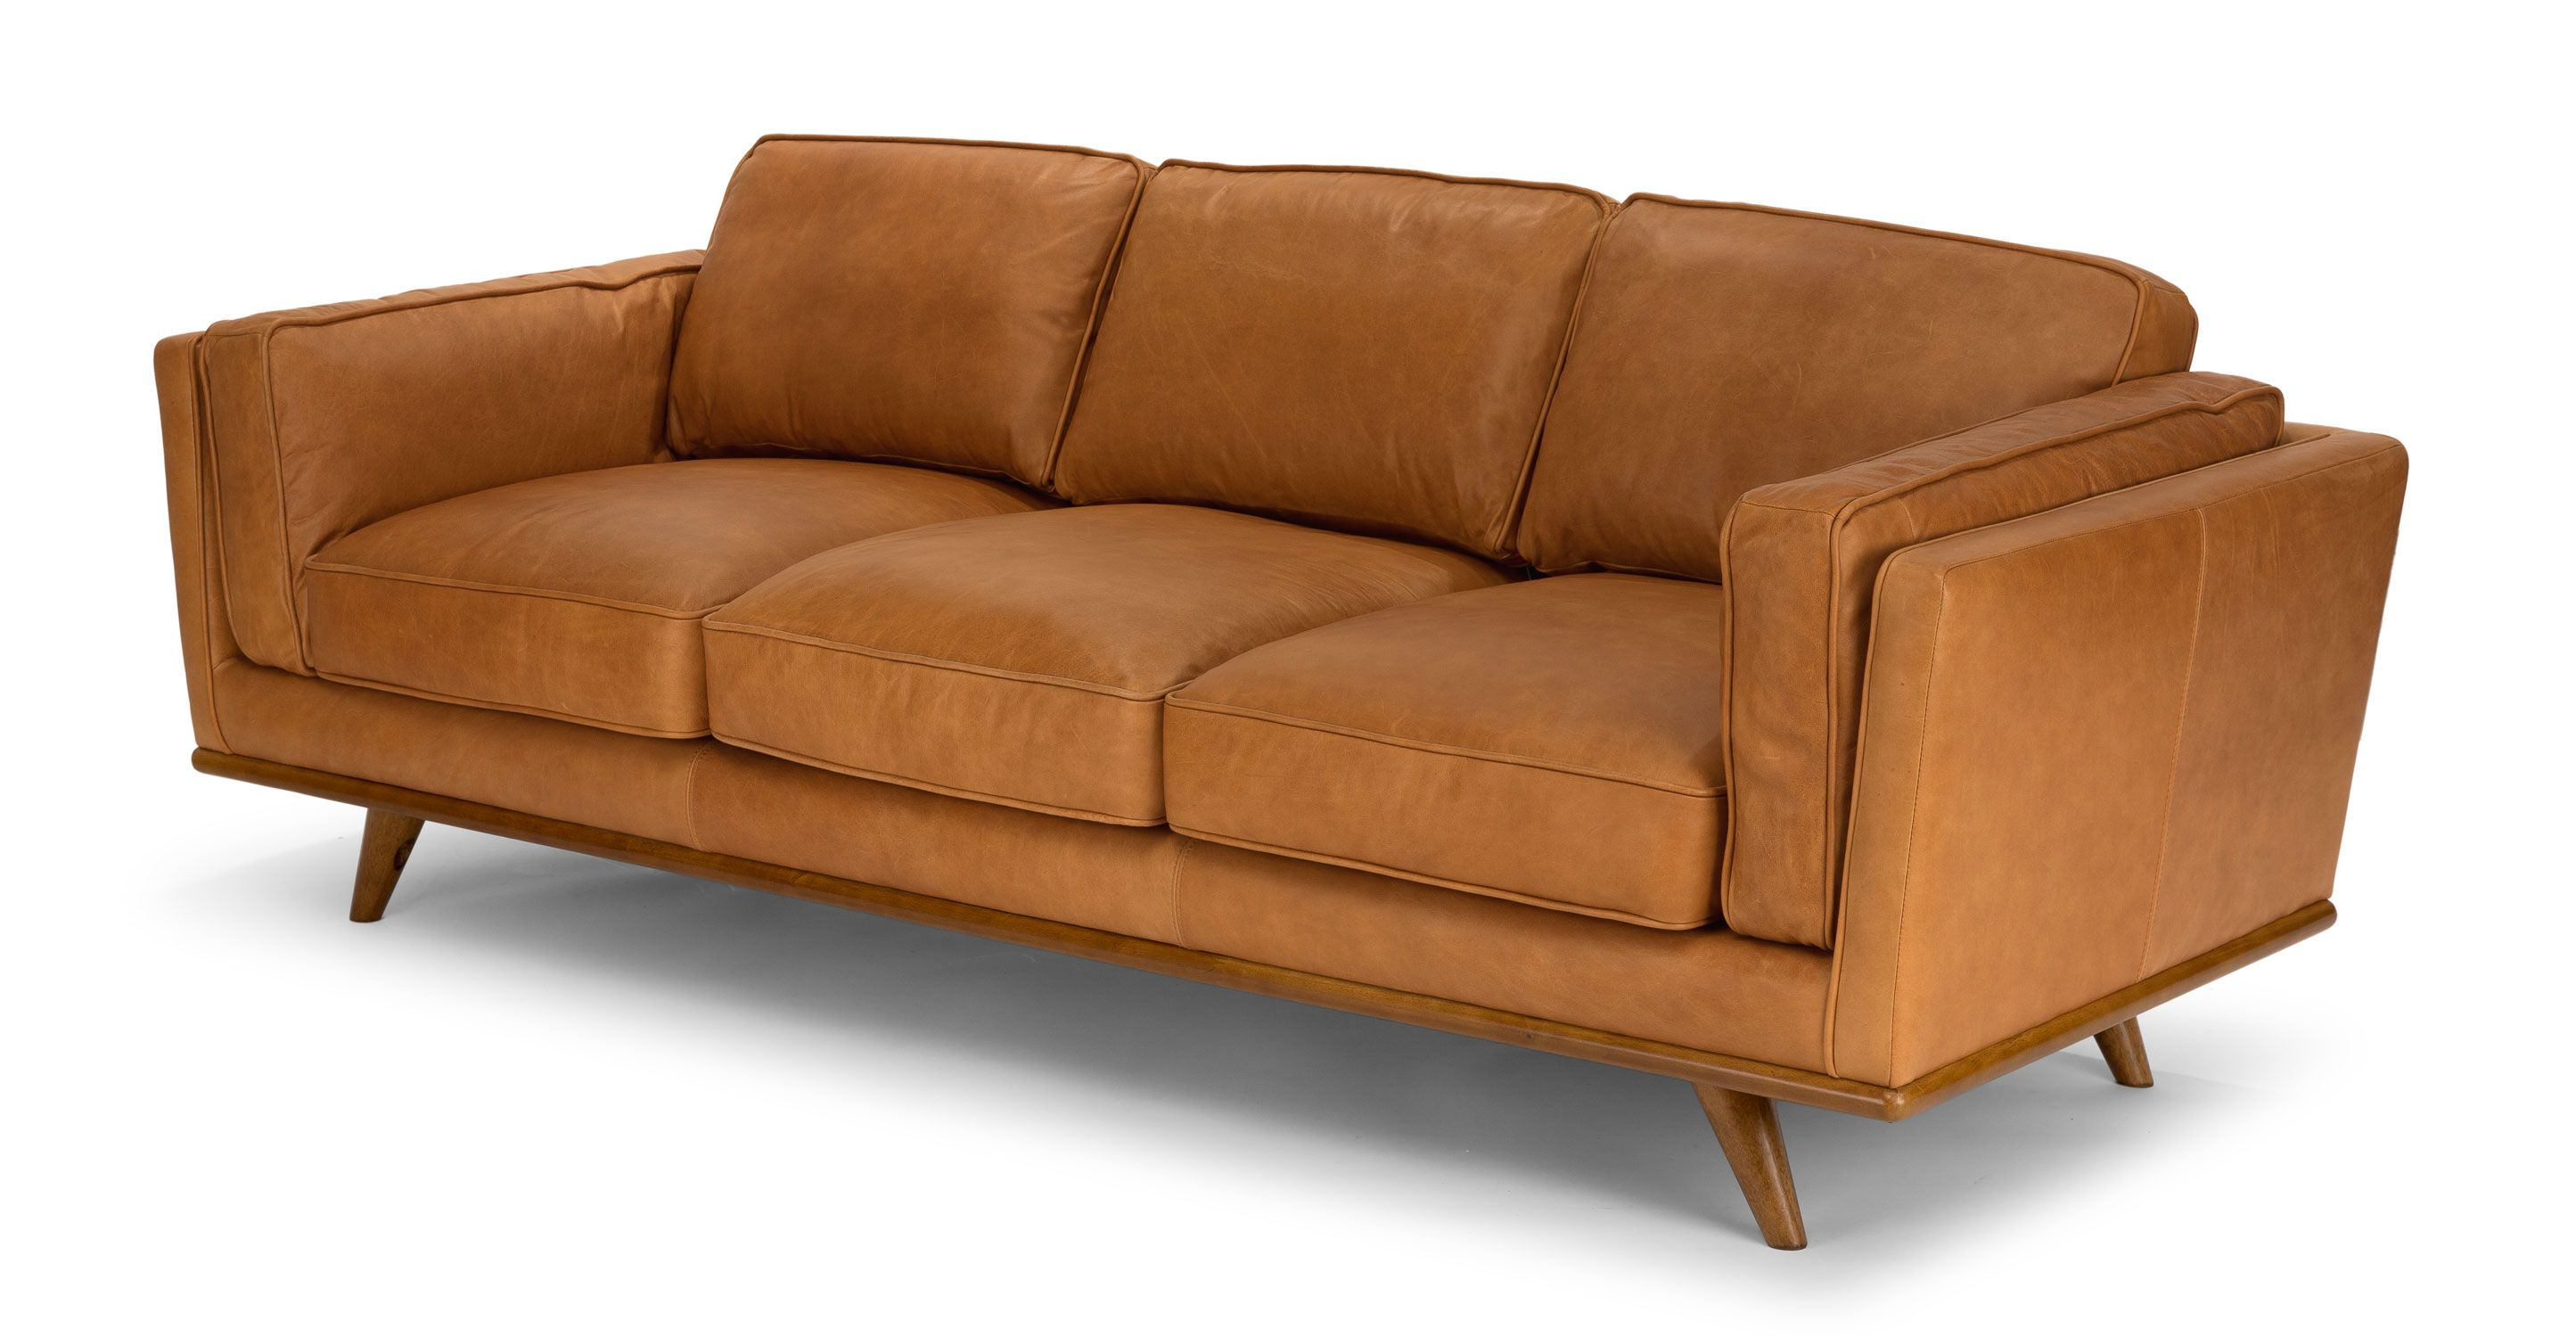 Couchtisch Natuzzi Tan Leather Sofa In Honey Oak Wood 3 Seat Article Timber Modern